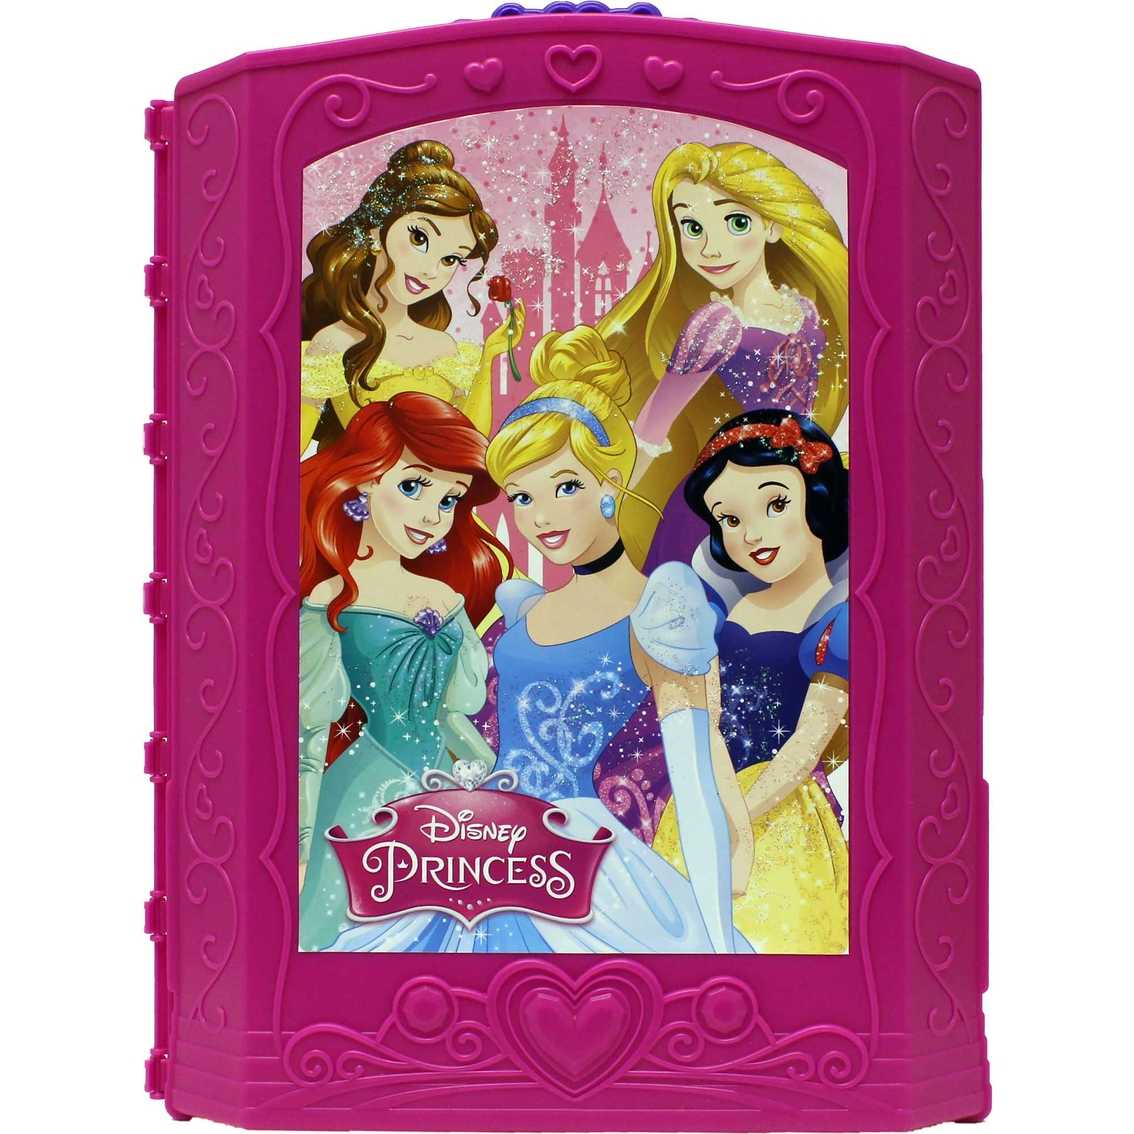 Disney Princess Doll Case Doll Accessories Baby Amp Toys